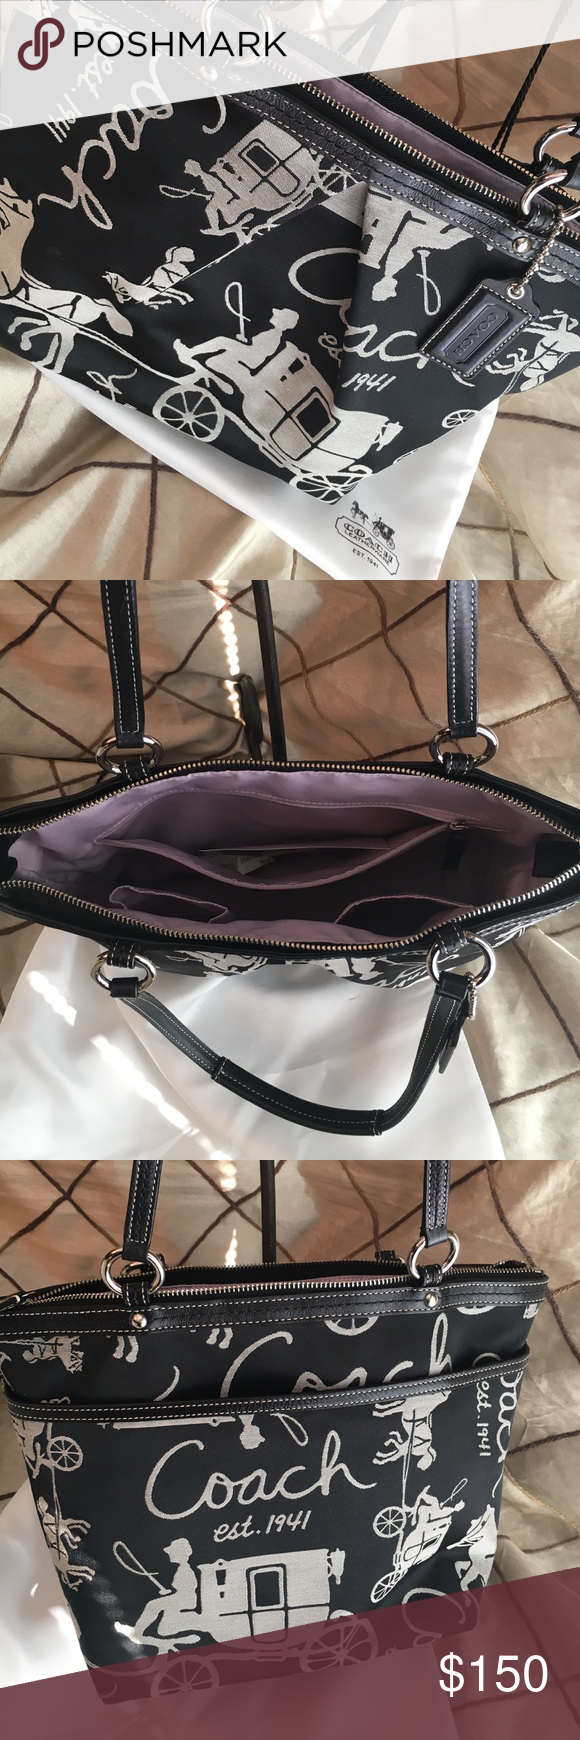 Authentic Coach Signature Hac Tote ✨Black & White Coach Tote✨ purchased at the Destin Coach Store by my Mom when she was working. She is retired now. Your Gain. Light lavender inside & large outside pocket. Dust Bag included Price tag and paper still inside bag✨MSRB $268 K0993-F14482 Looks Brand New & in Excellent Condition✨ Coach Bags Totes